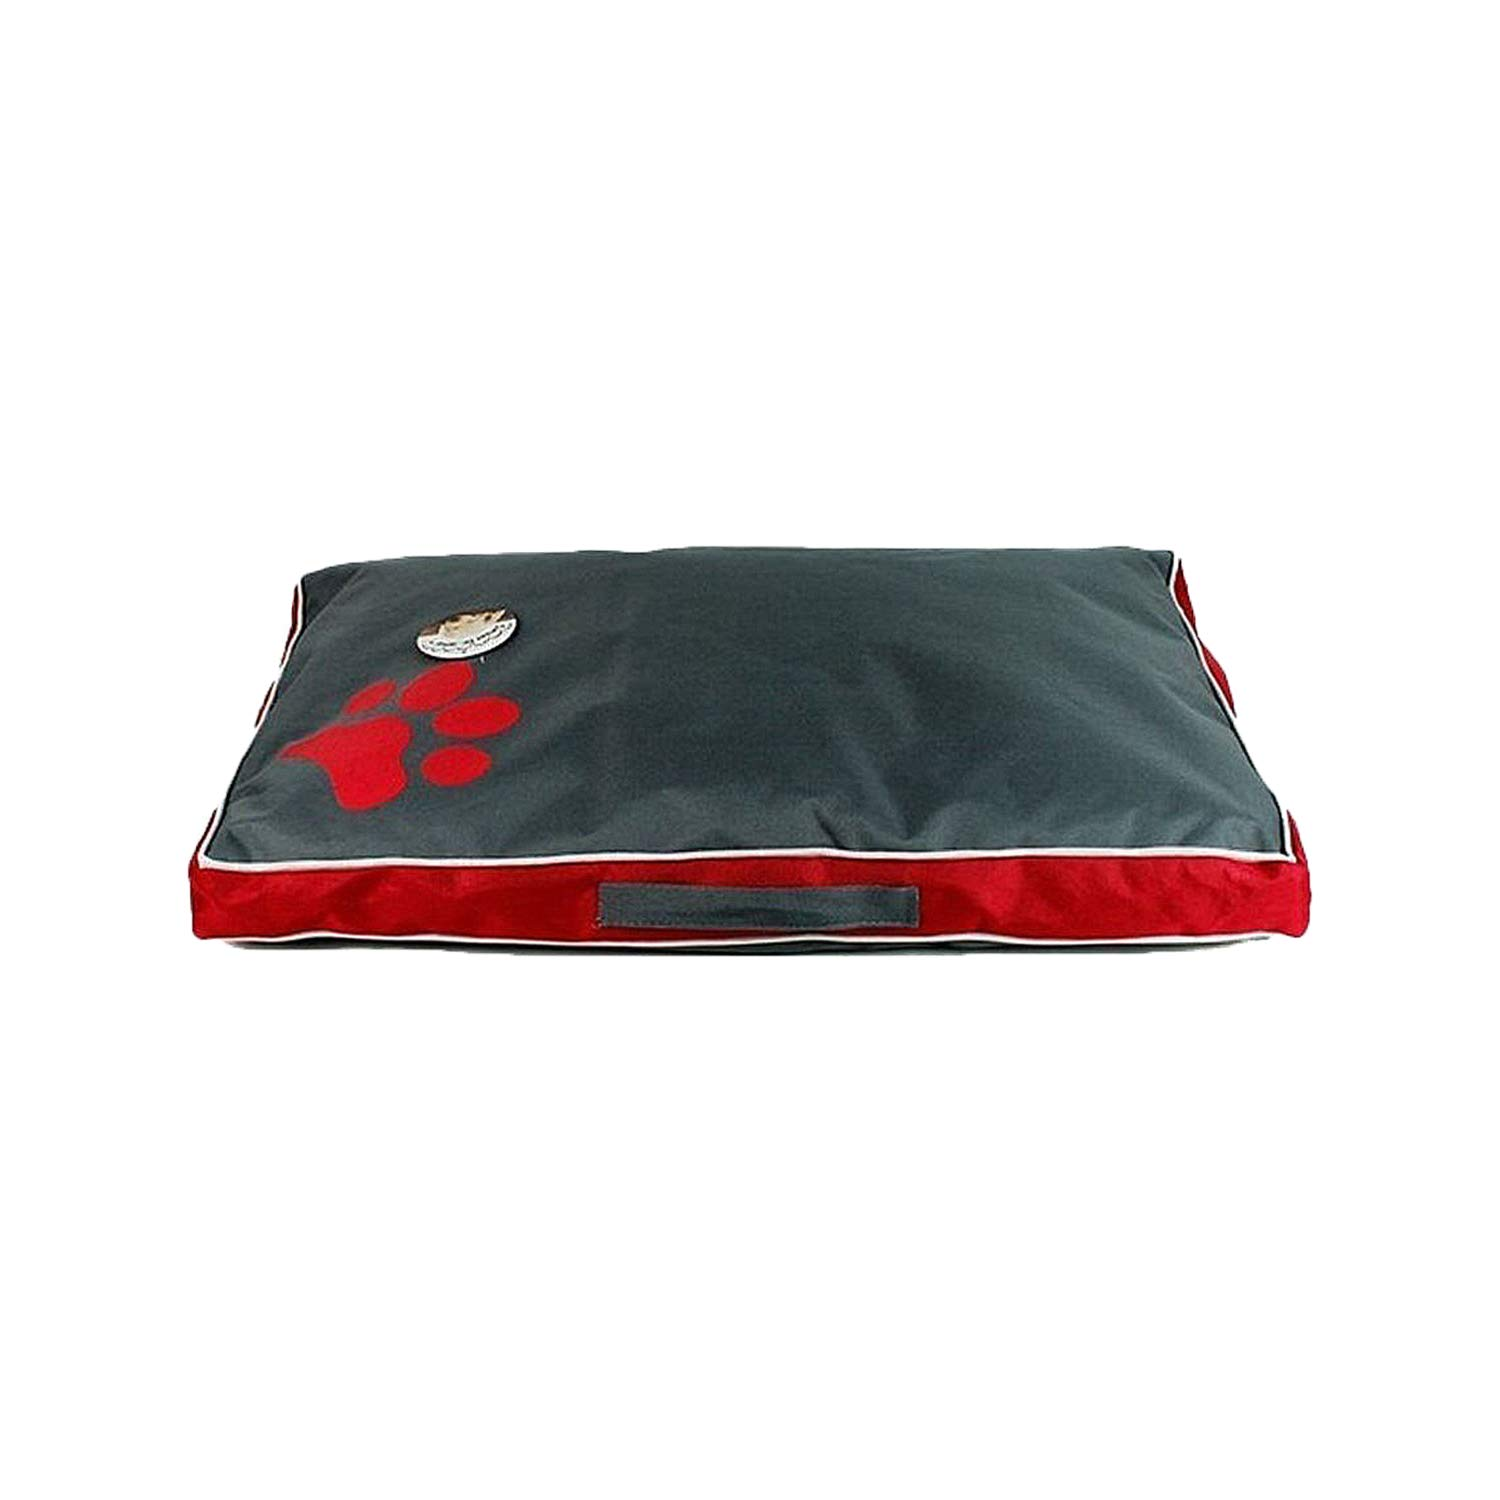 Red Small Red Small Kennel Fully Removable and Washable Dog Pad Summer Waterproof Oxford Cloth Summer Pet Mat Pet Ice Pad Dog Pad Kennel Rectangular,Red,S